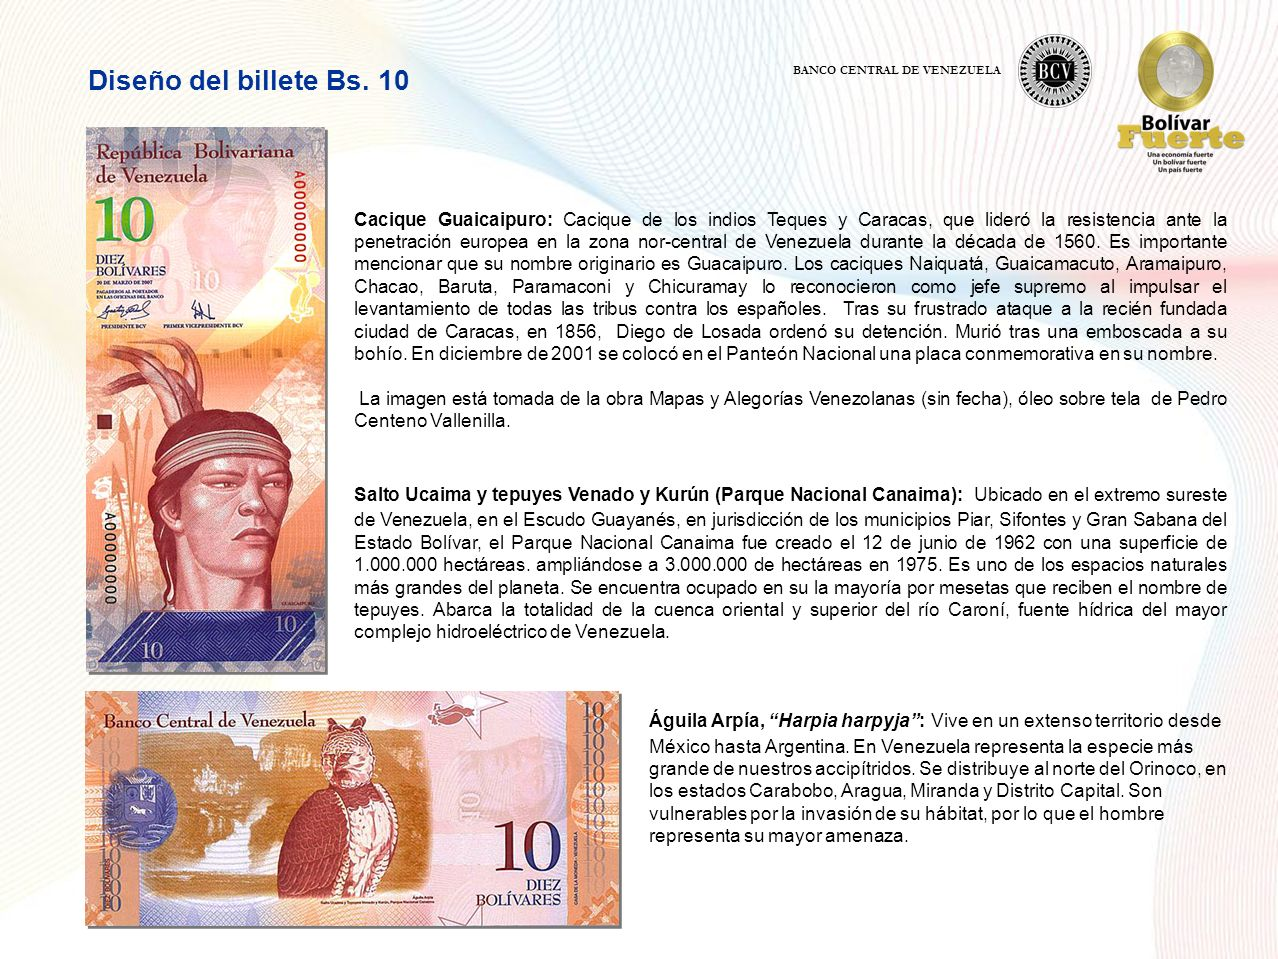 Diseño del billete Bs. 10 BANCO CENTRAL DE VENEZUELA.